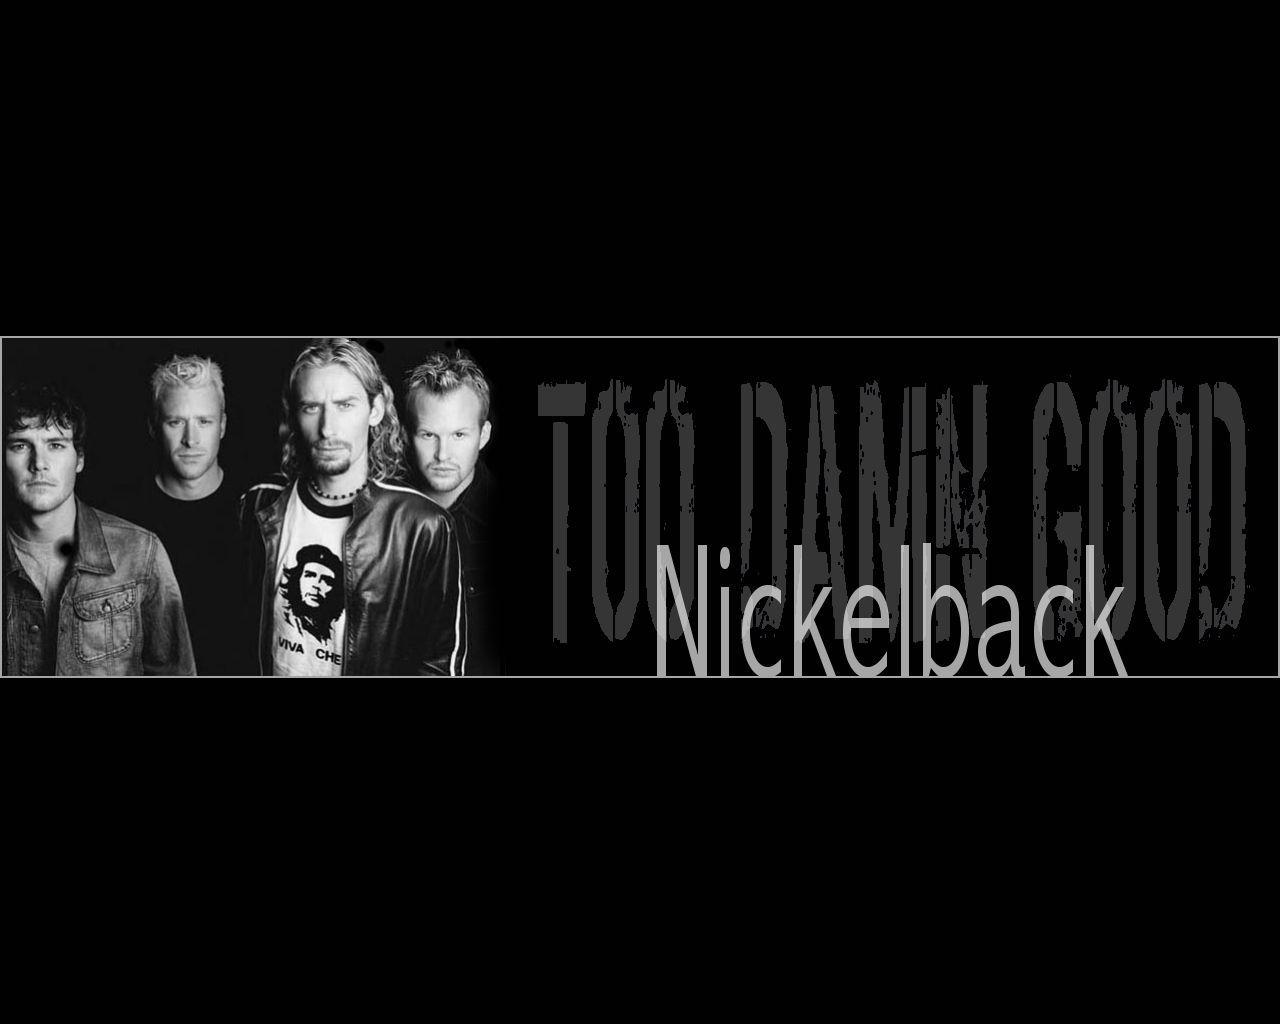 Nickelback wallpapers ~ ALL ABOUT MUSIC